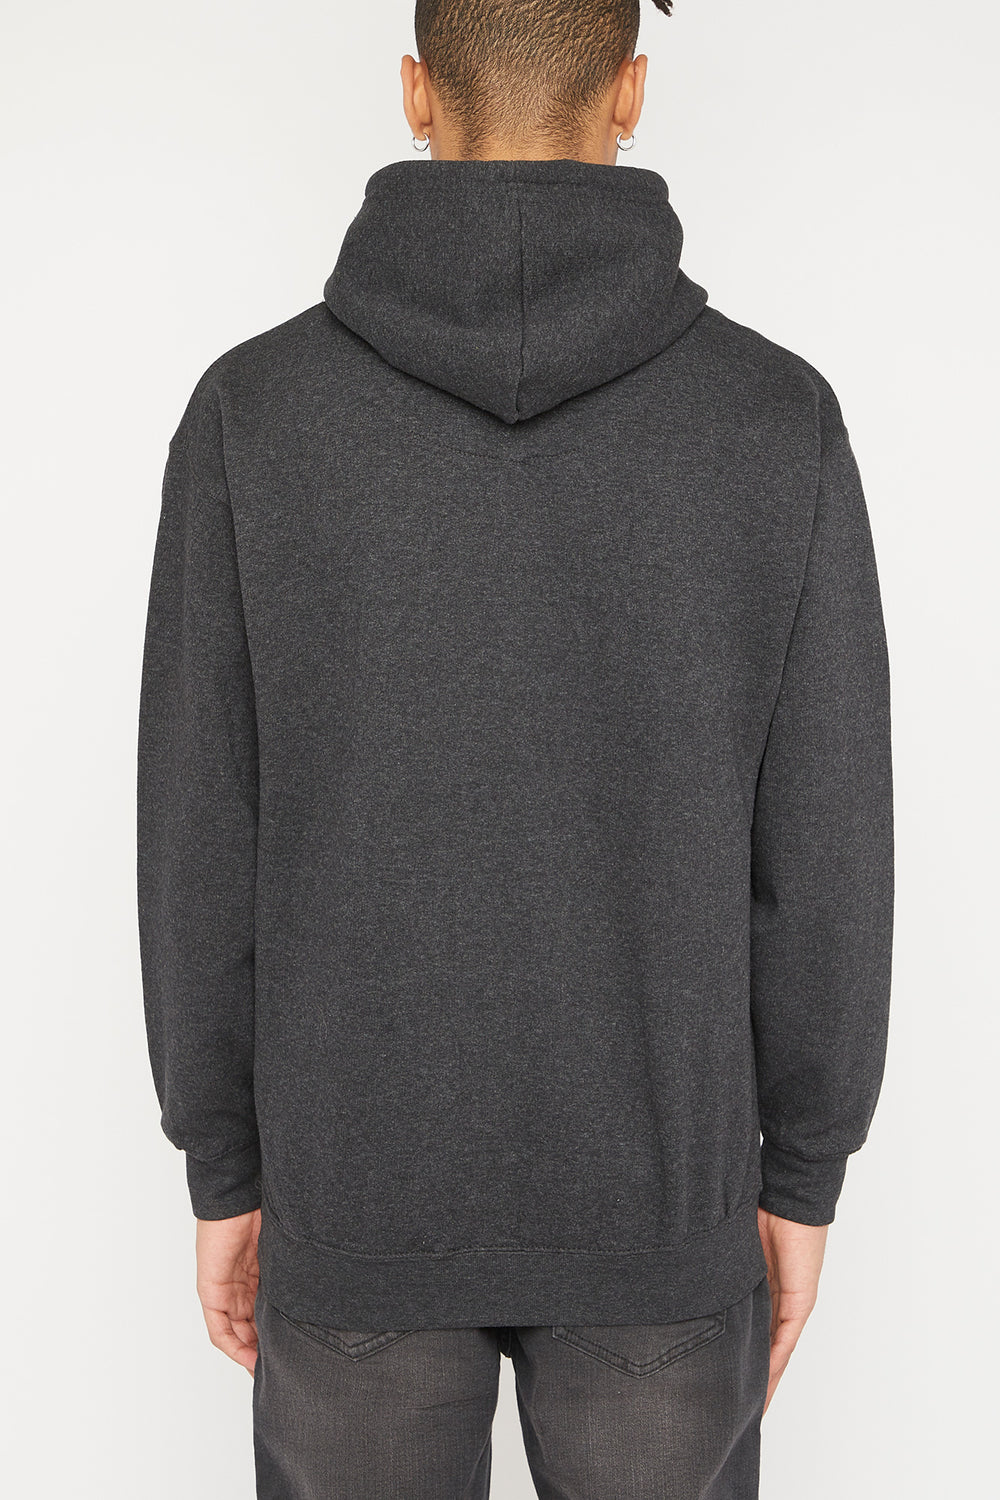 What's Up Doc Mens Hoodie Charcoal